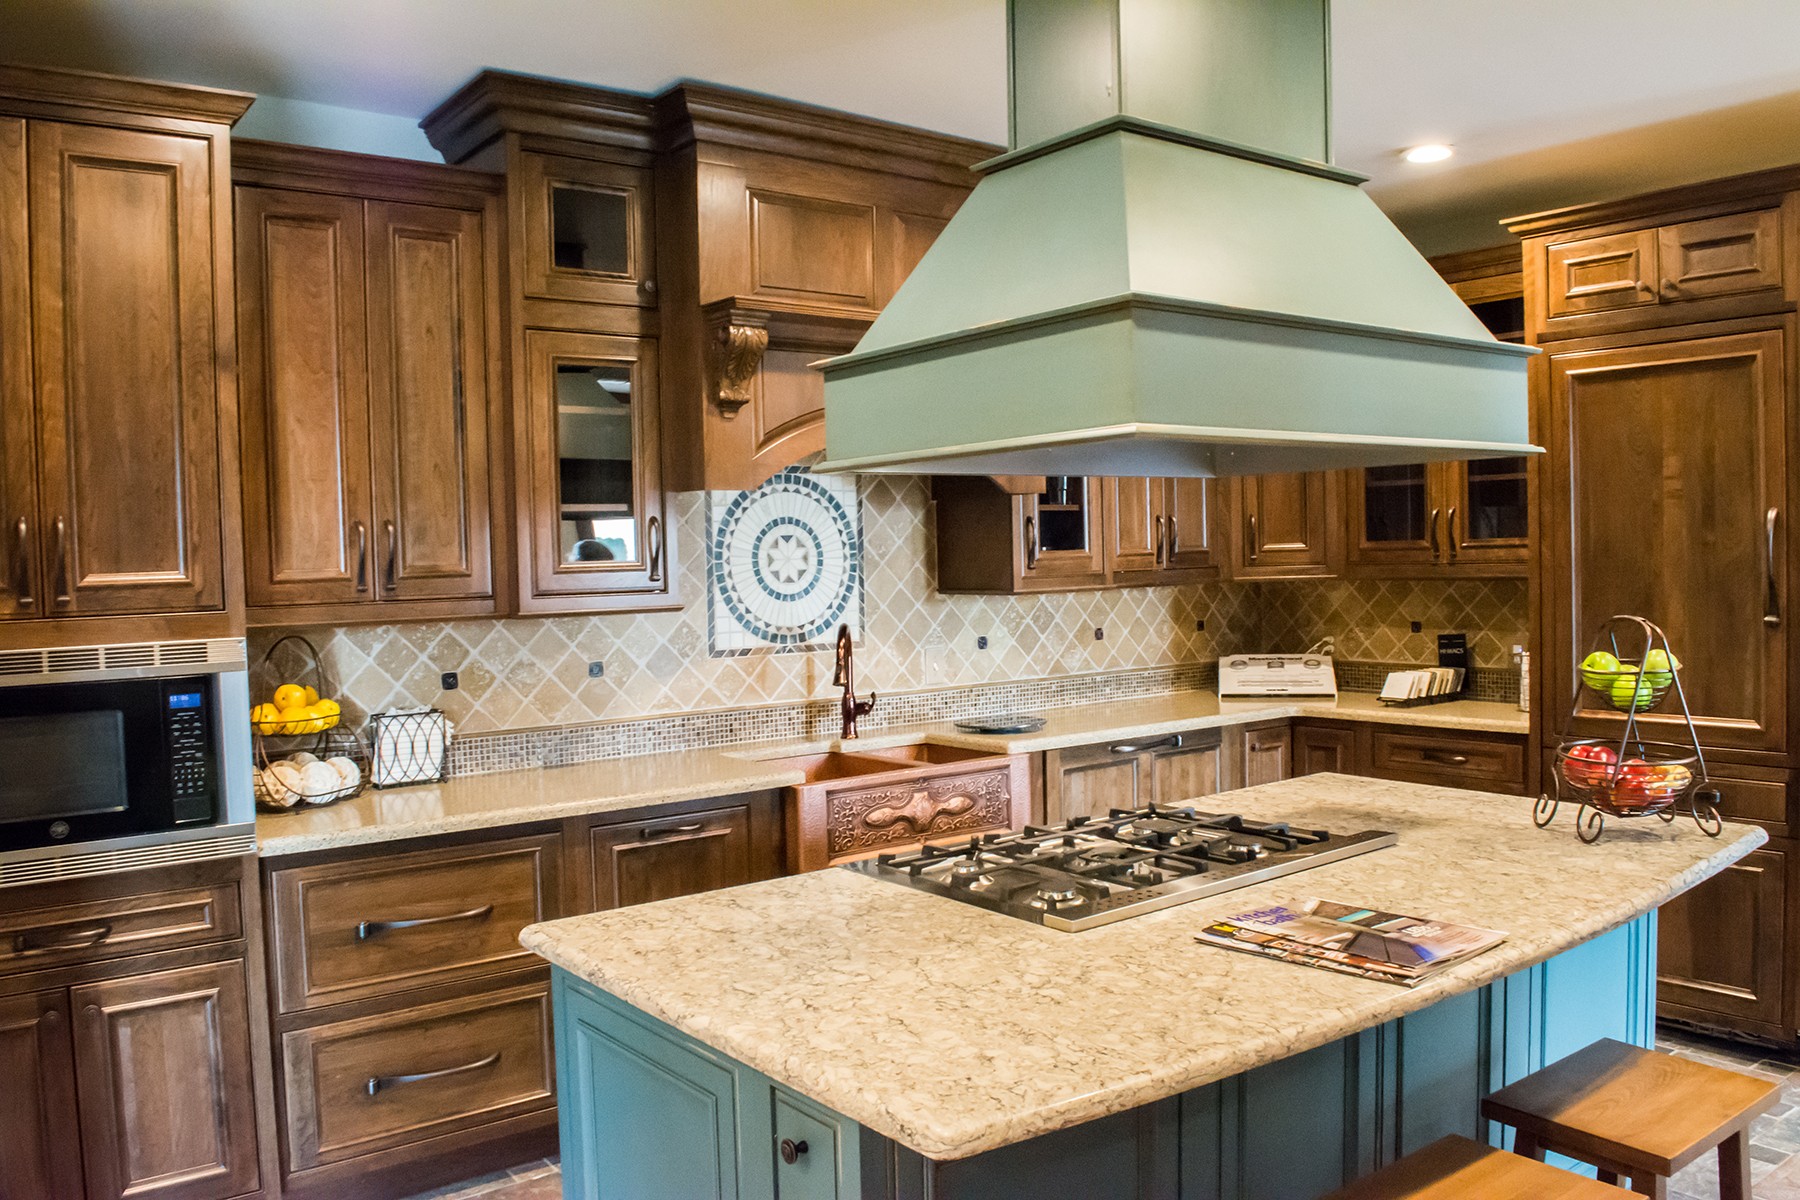 Kitchen and bath design by kight kitchen interiors for Bathroom remodel evansville in